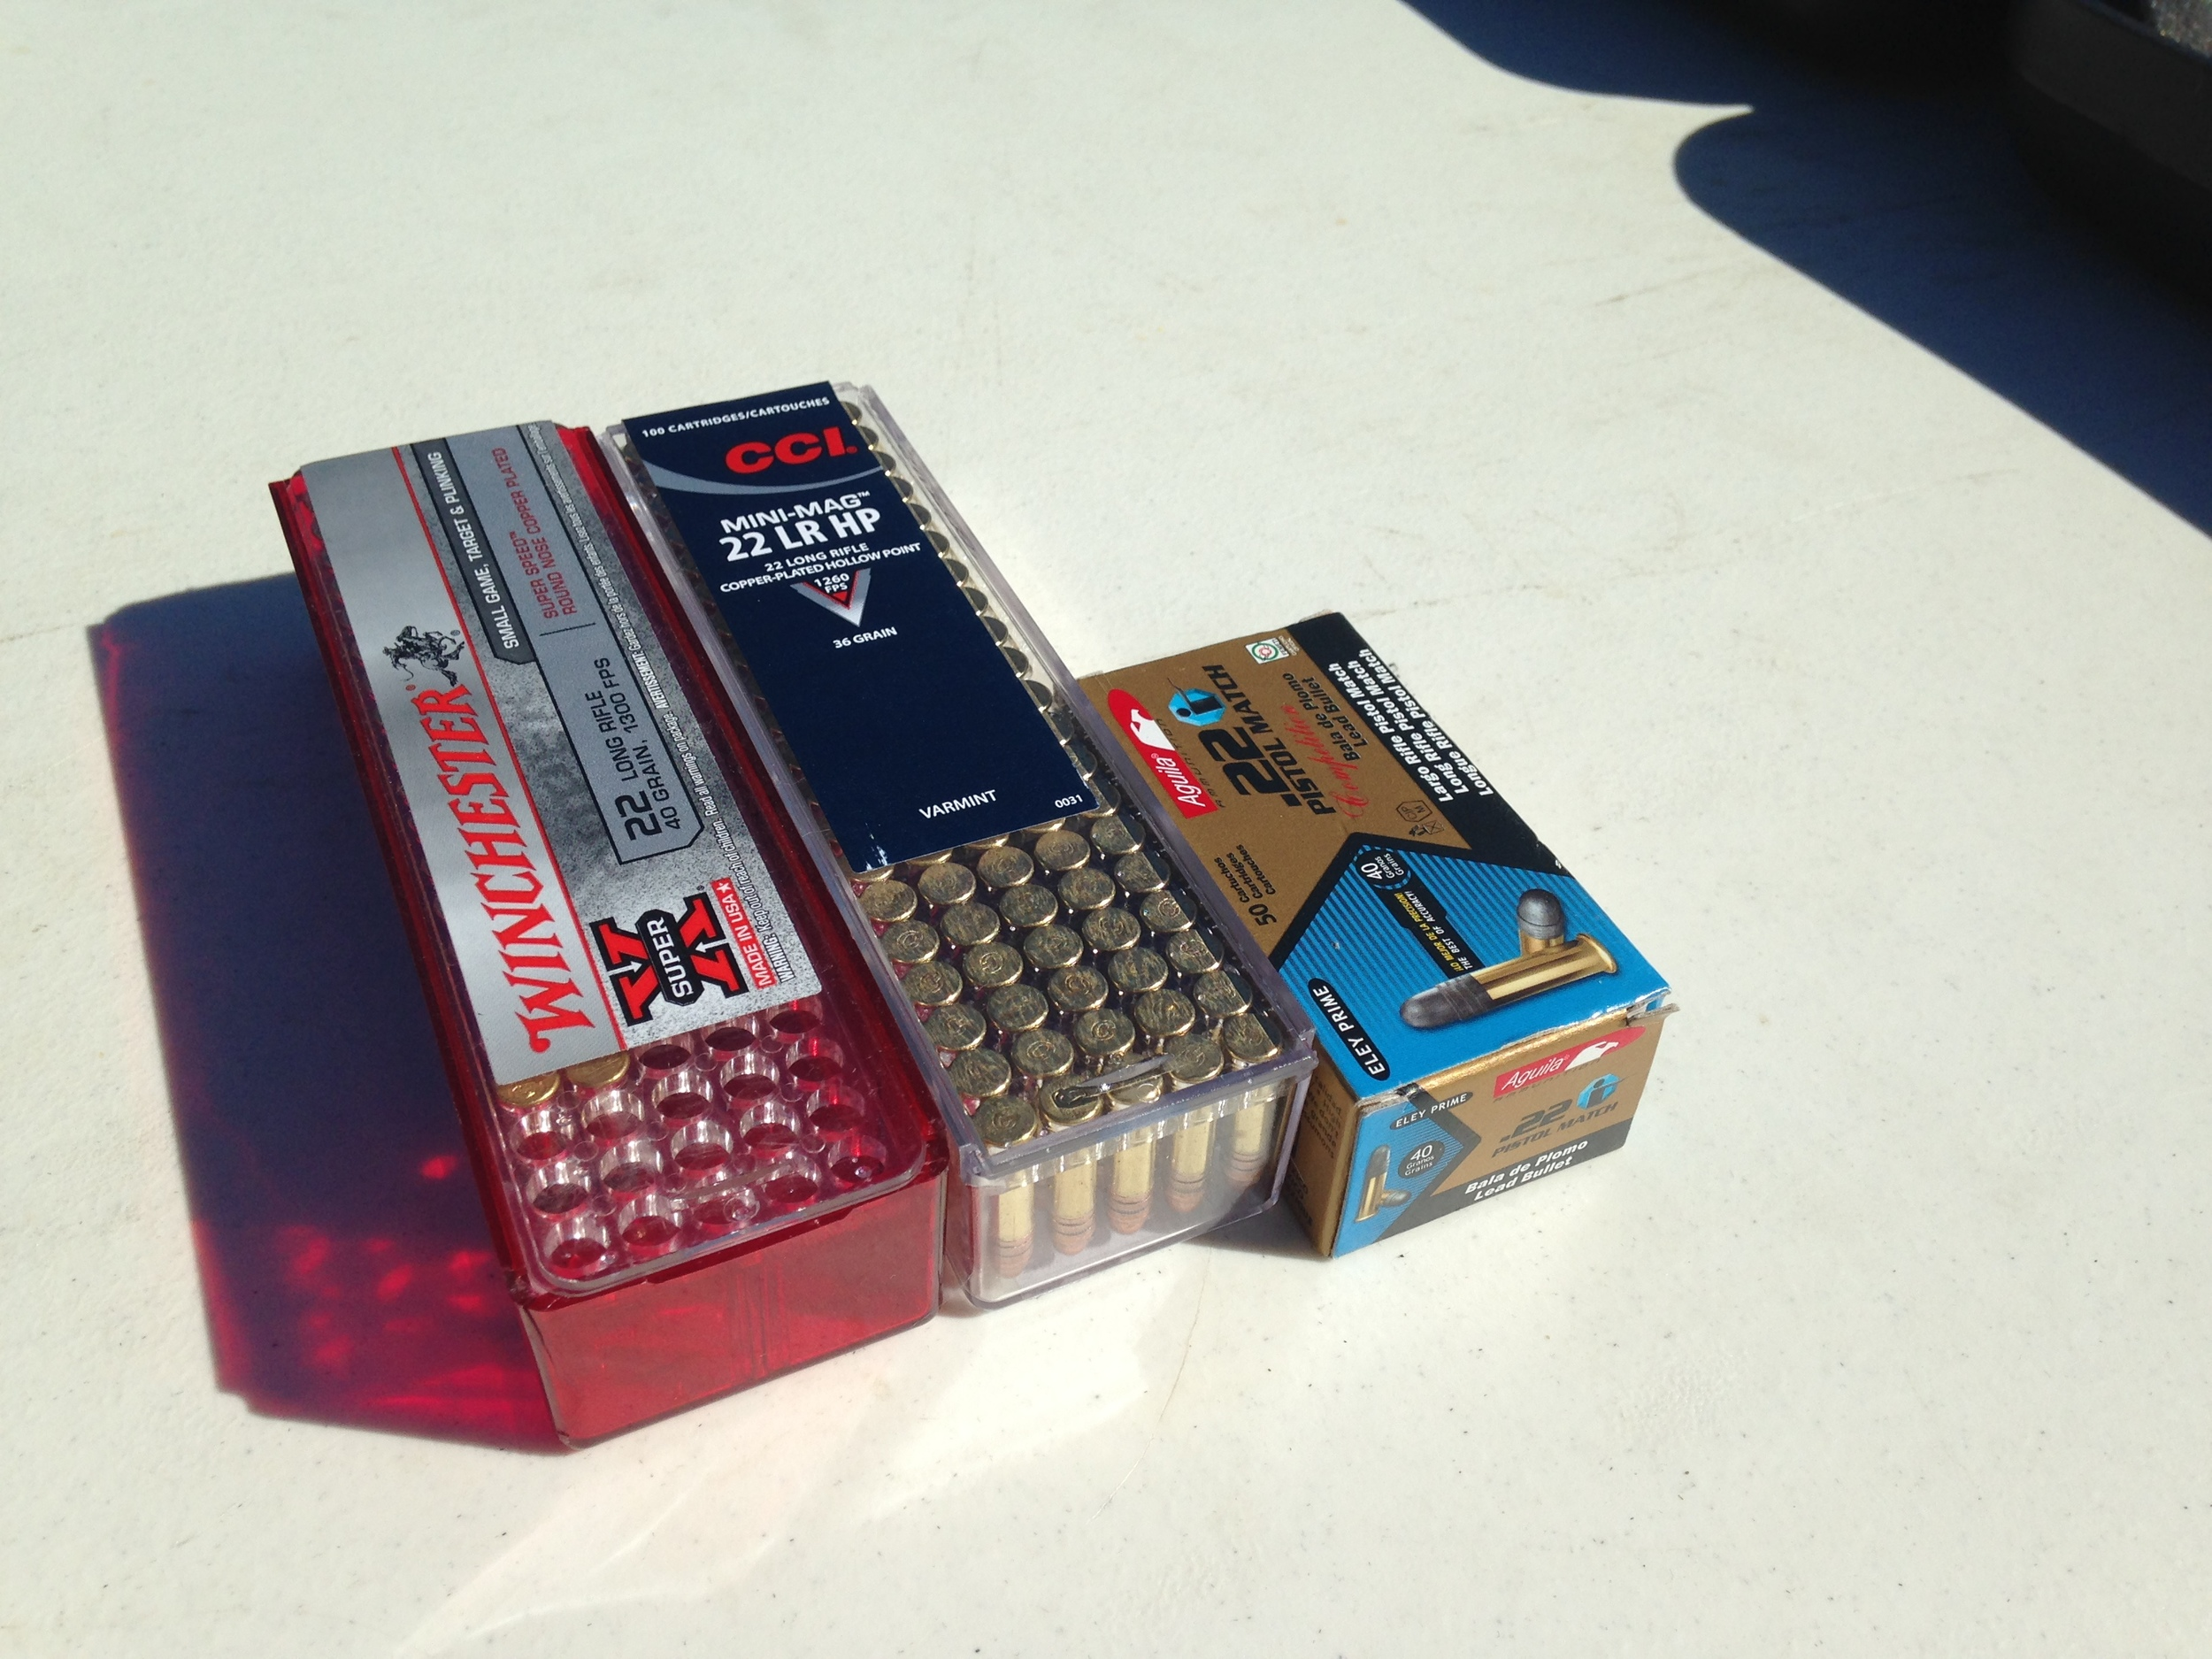 Multiple brands & types of ammo were used in the evalutation